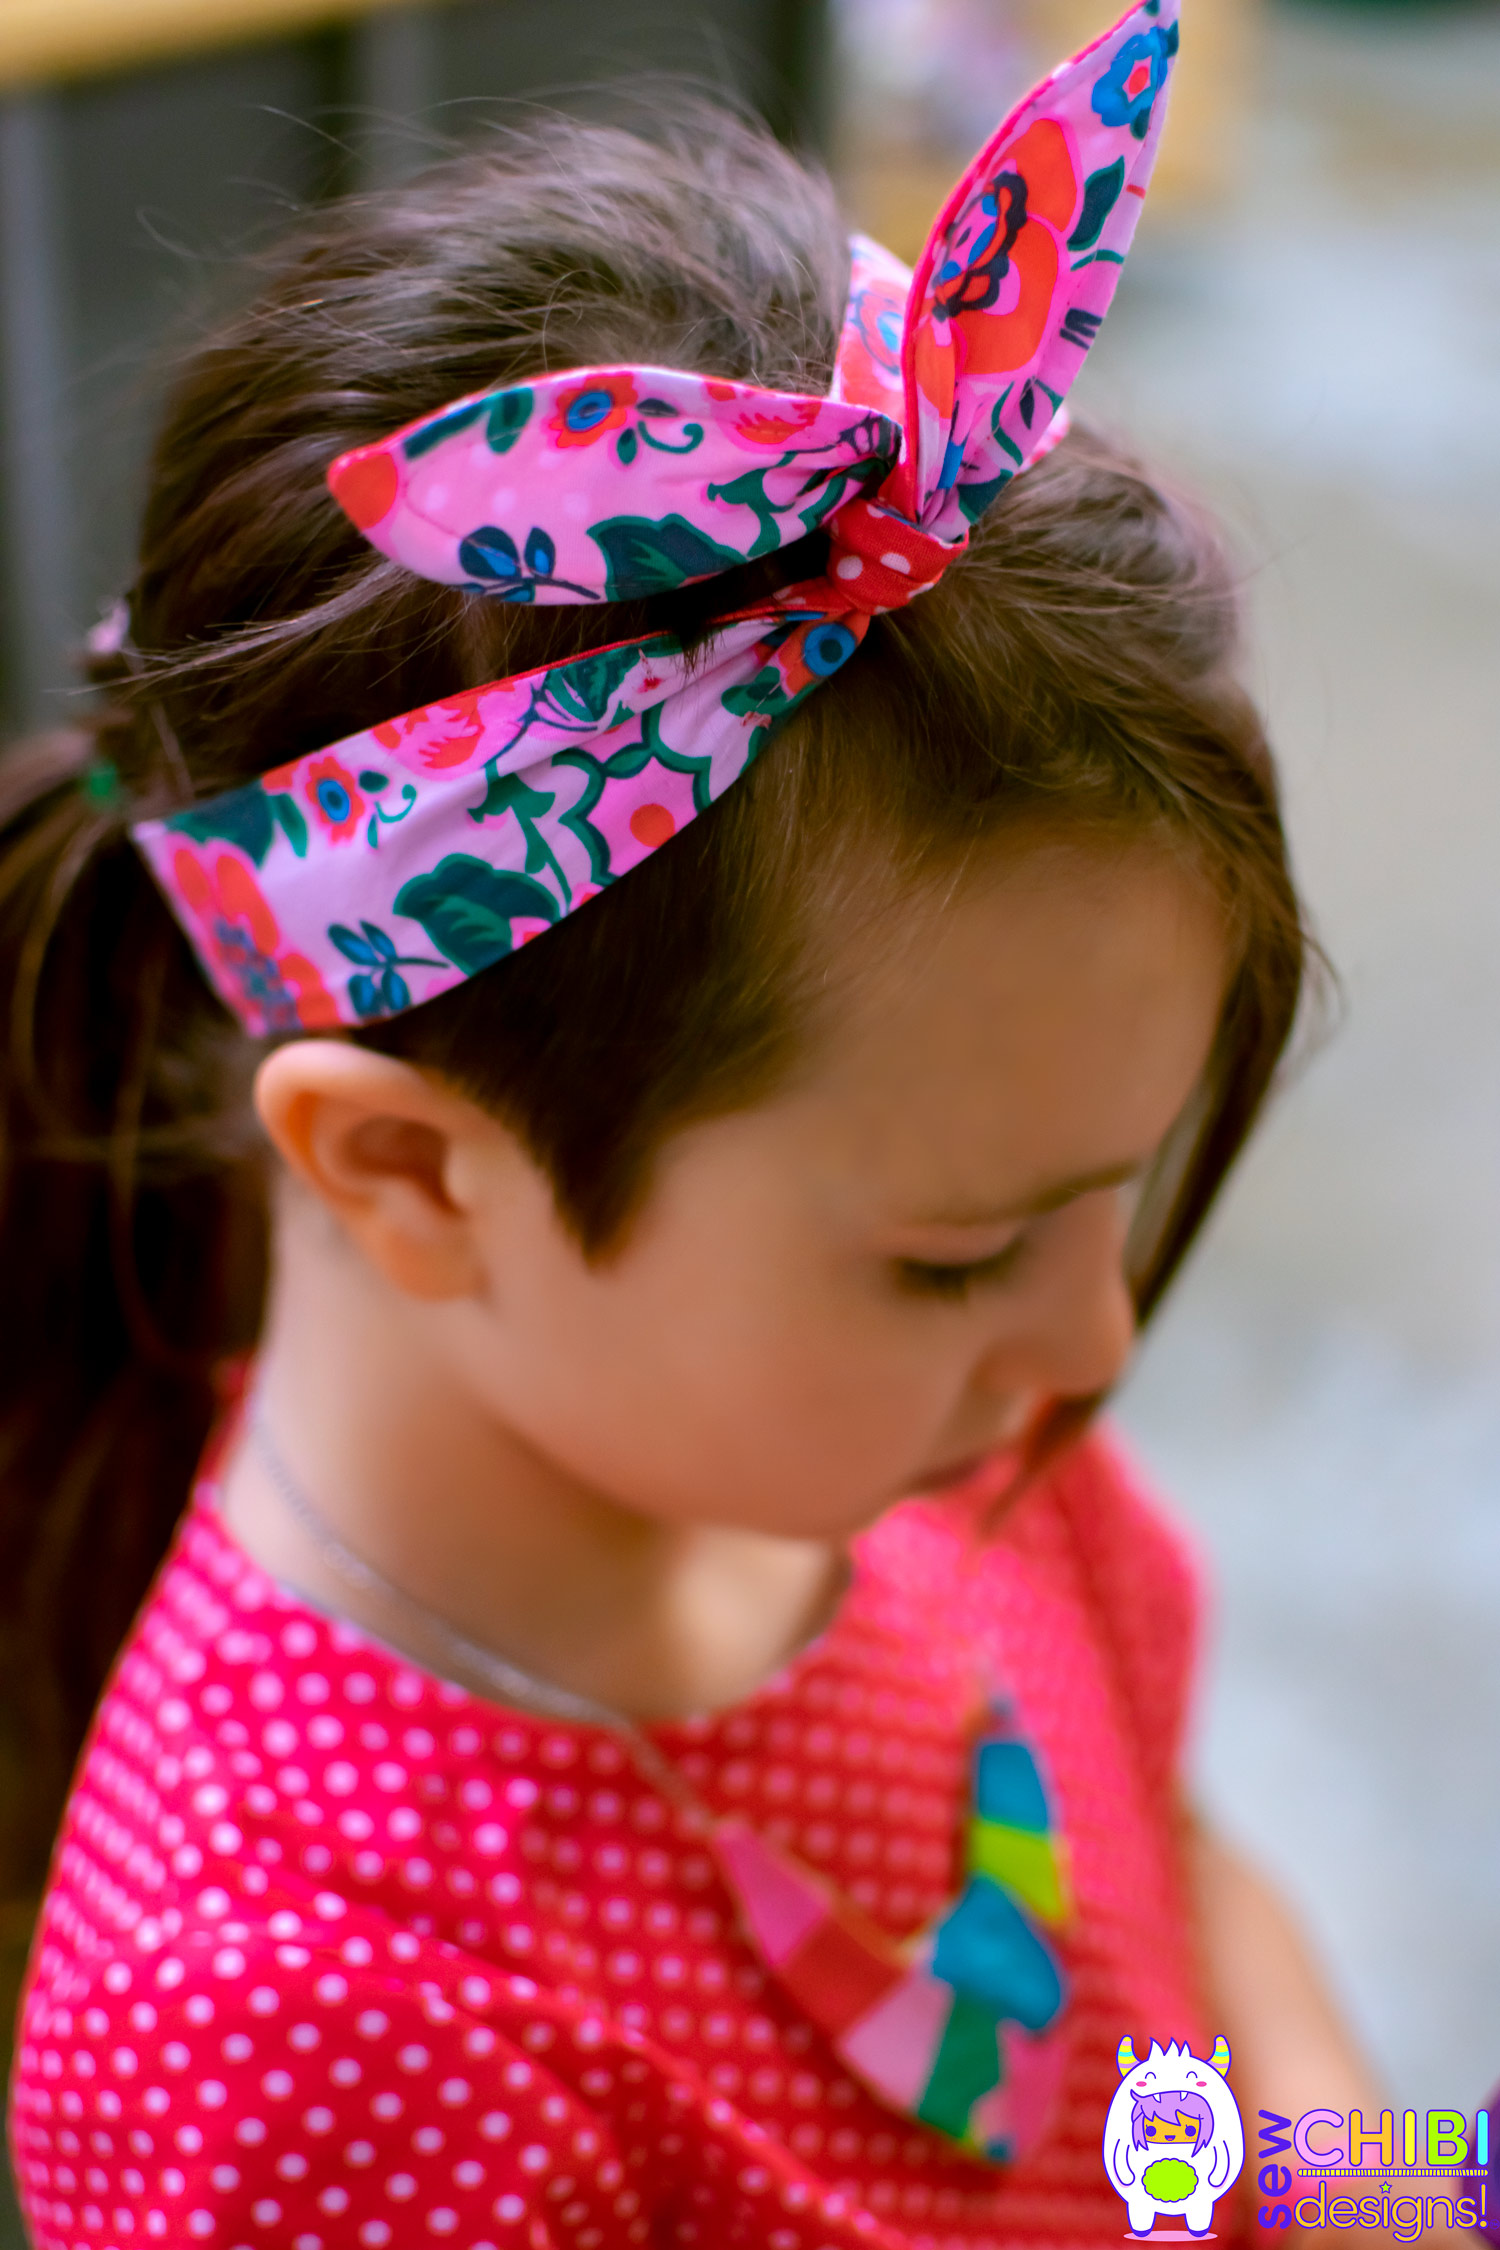 Kids Fashion: Ice Cream and Sundays Collection by Sew Chibi Designs for Week 2 of Project Run & Play